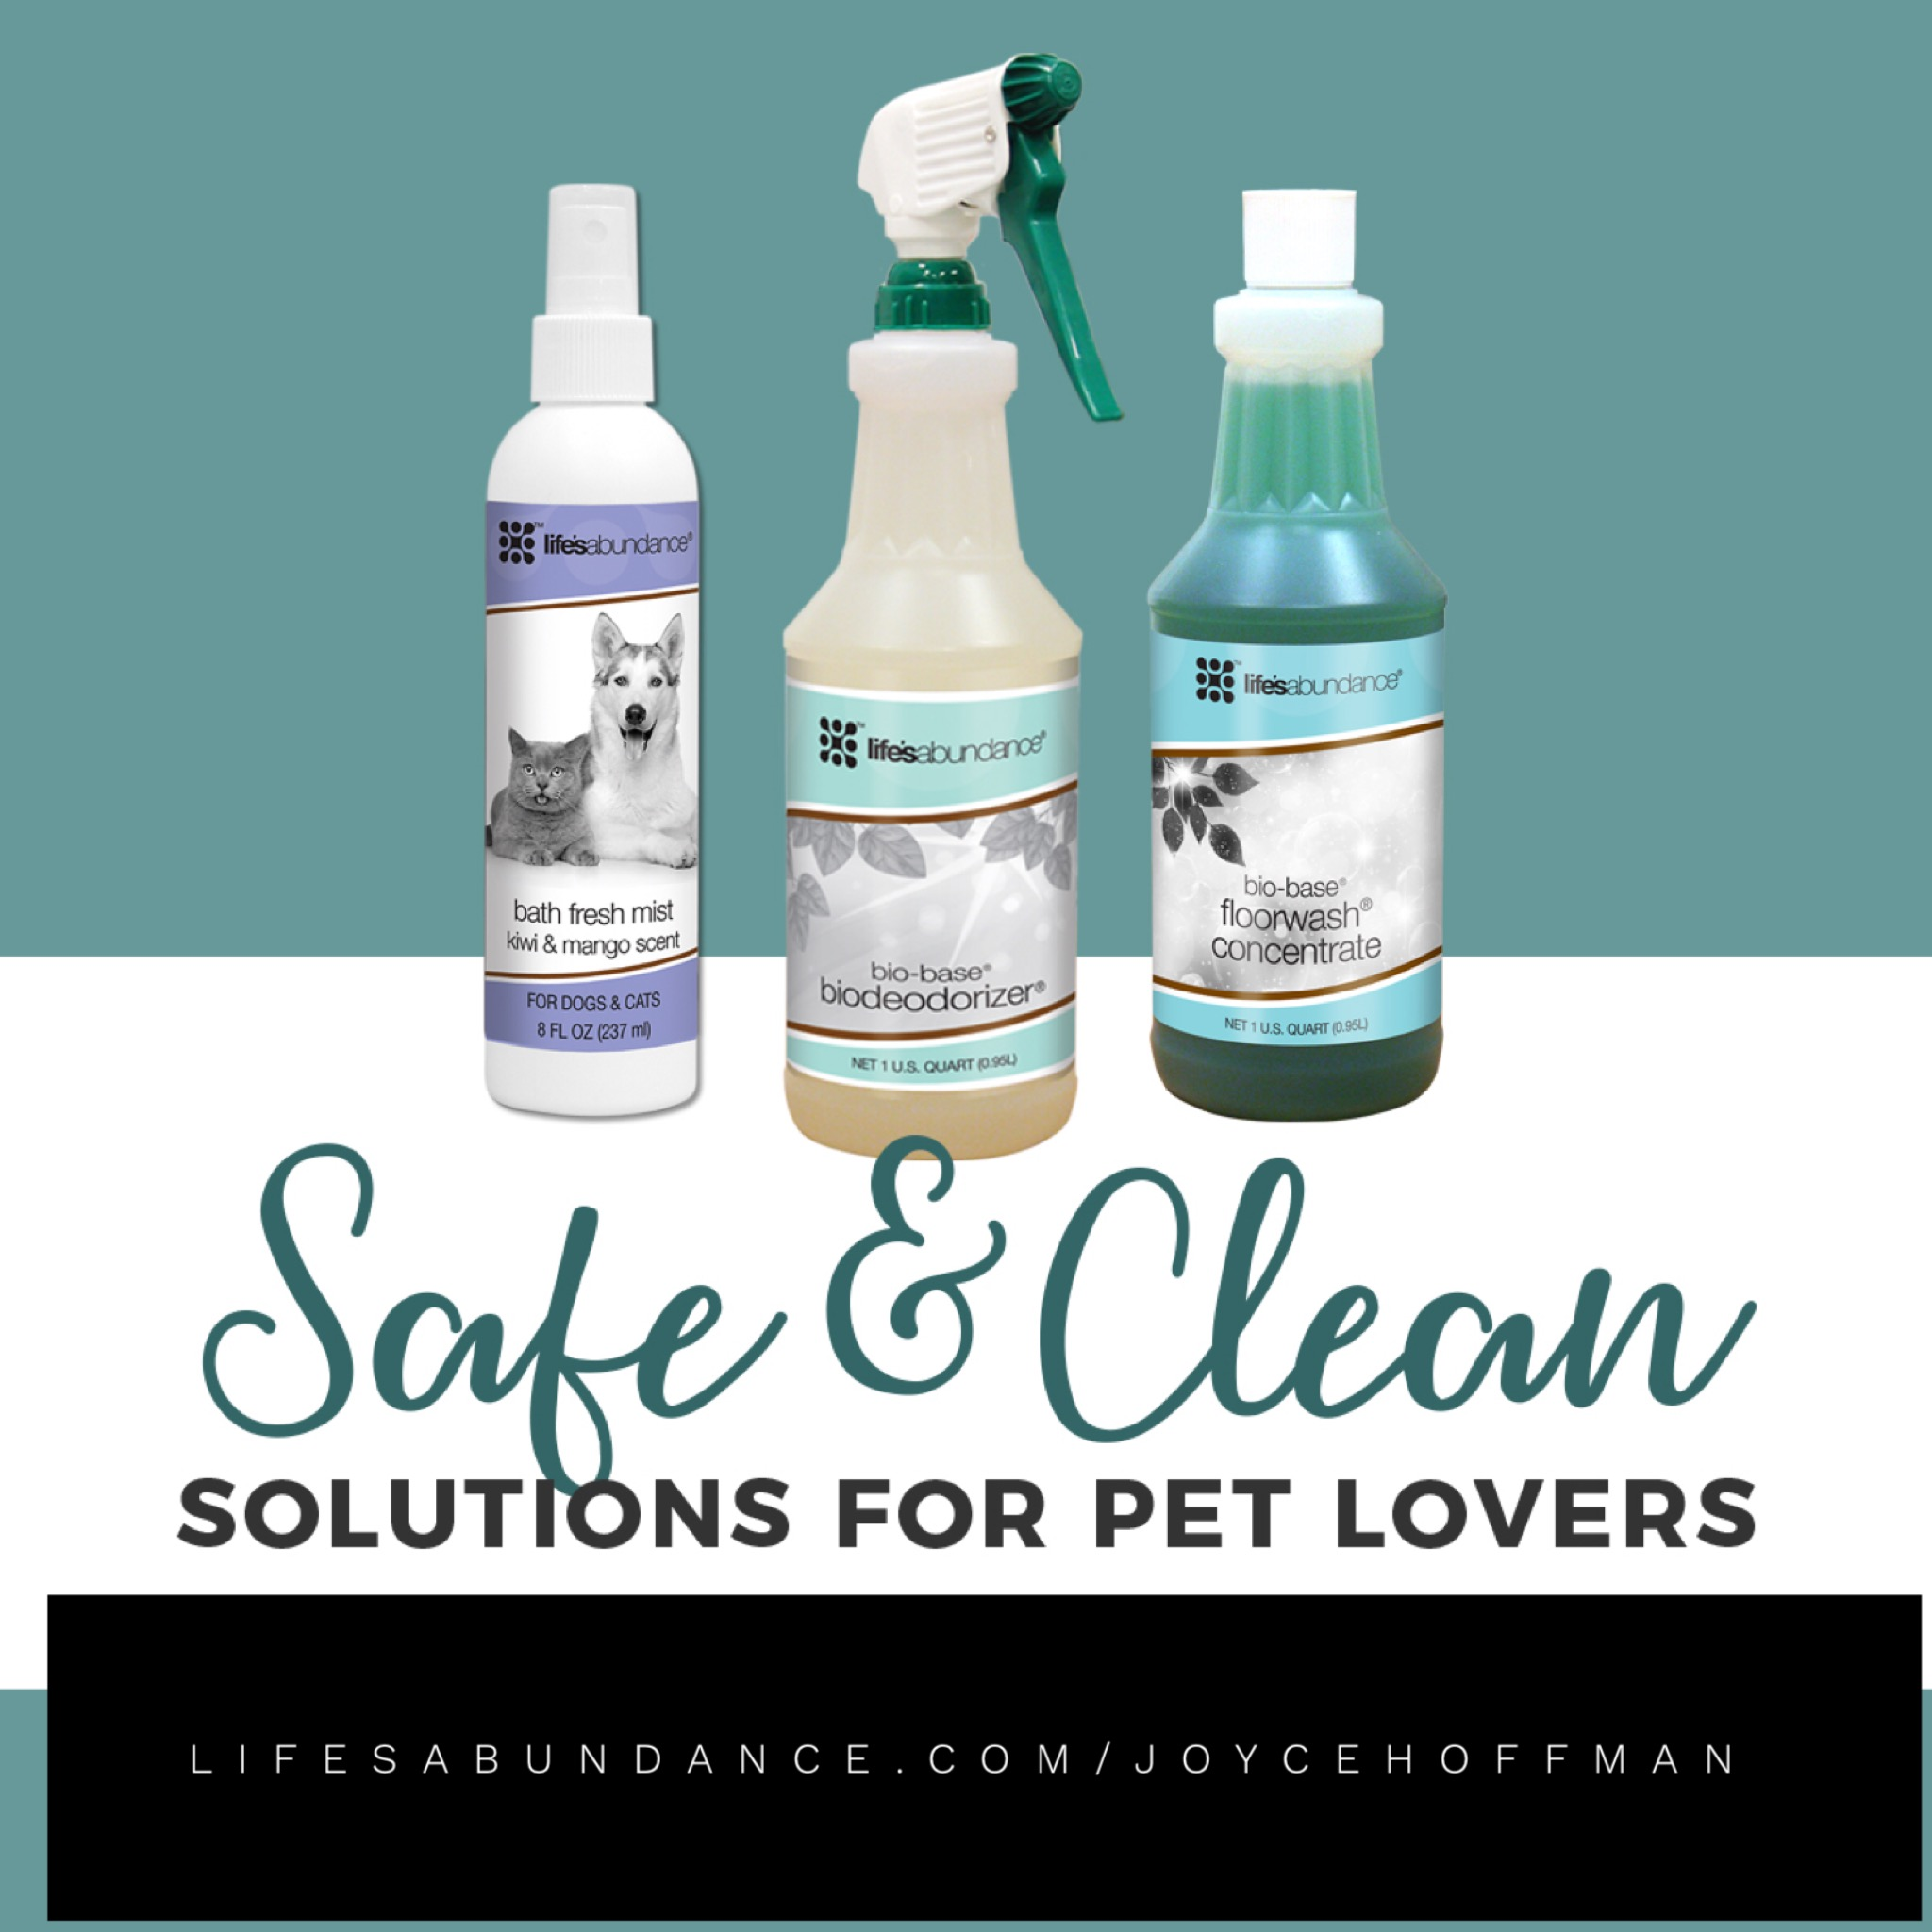 Switch to cleaning products that are a renewable resource and not a pollutant! - Floorwash Concentrate starts at under $14 and will yield up to 64 gallons of non-abrasive, non-corrosive cleaning power.BioDeodorizer starts at just over $10 and actually neutralizes odors instead of covering them up with chemicals and perfumes.